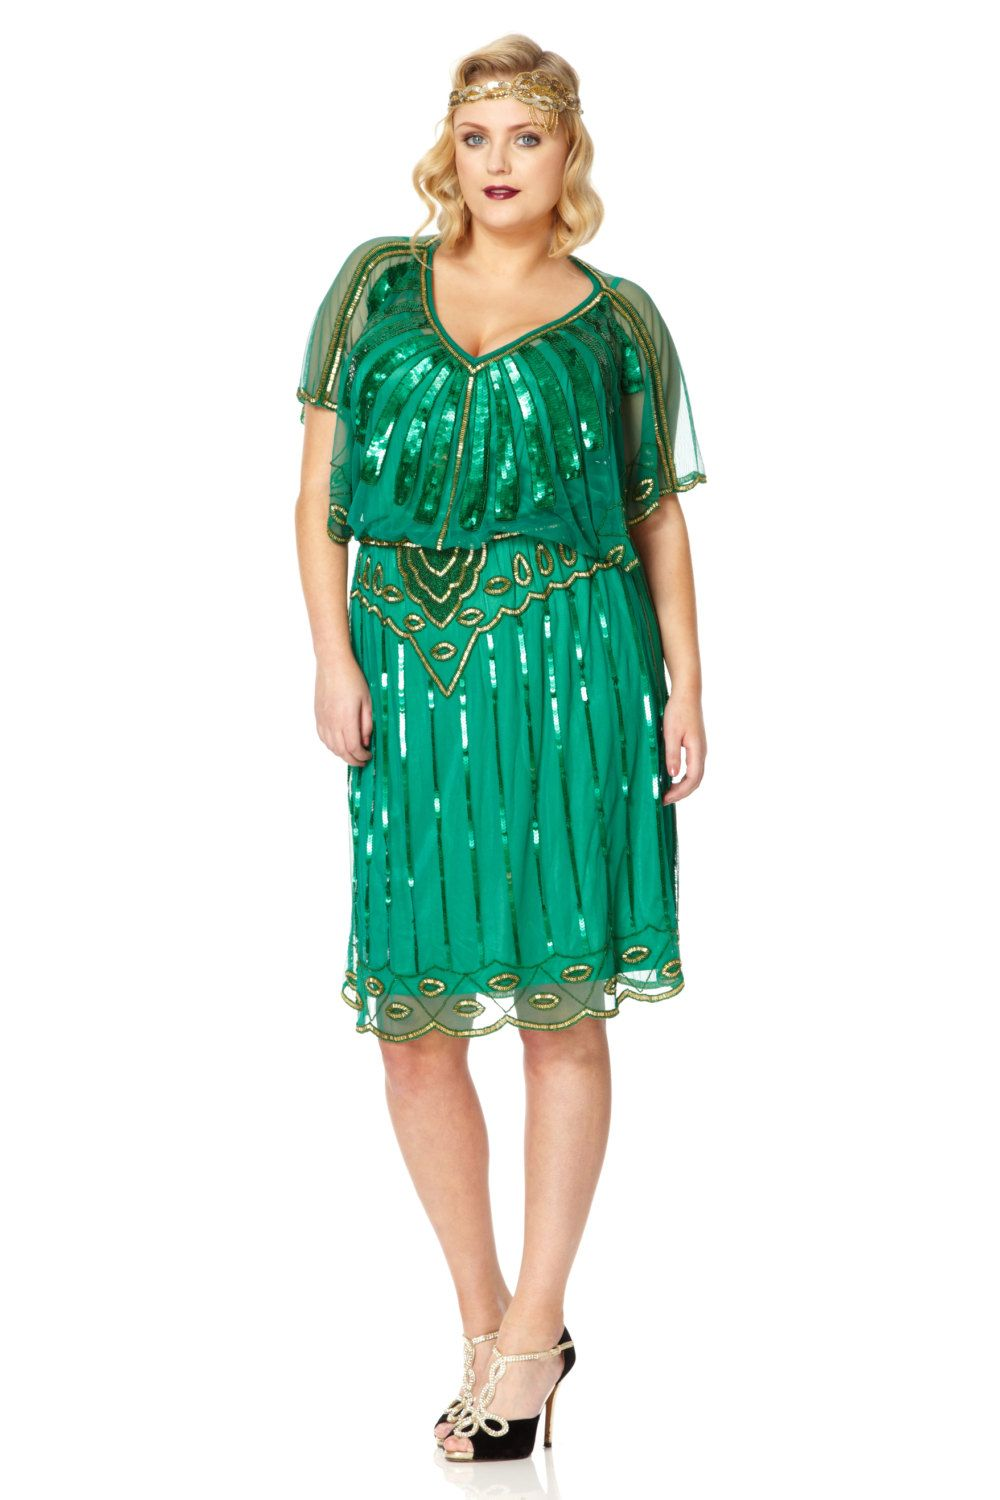 UK22 US18 #AUS22 Emerald Green #Vintage inspired 20s Flapper Great ...